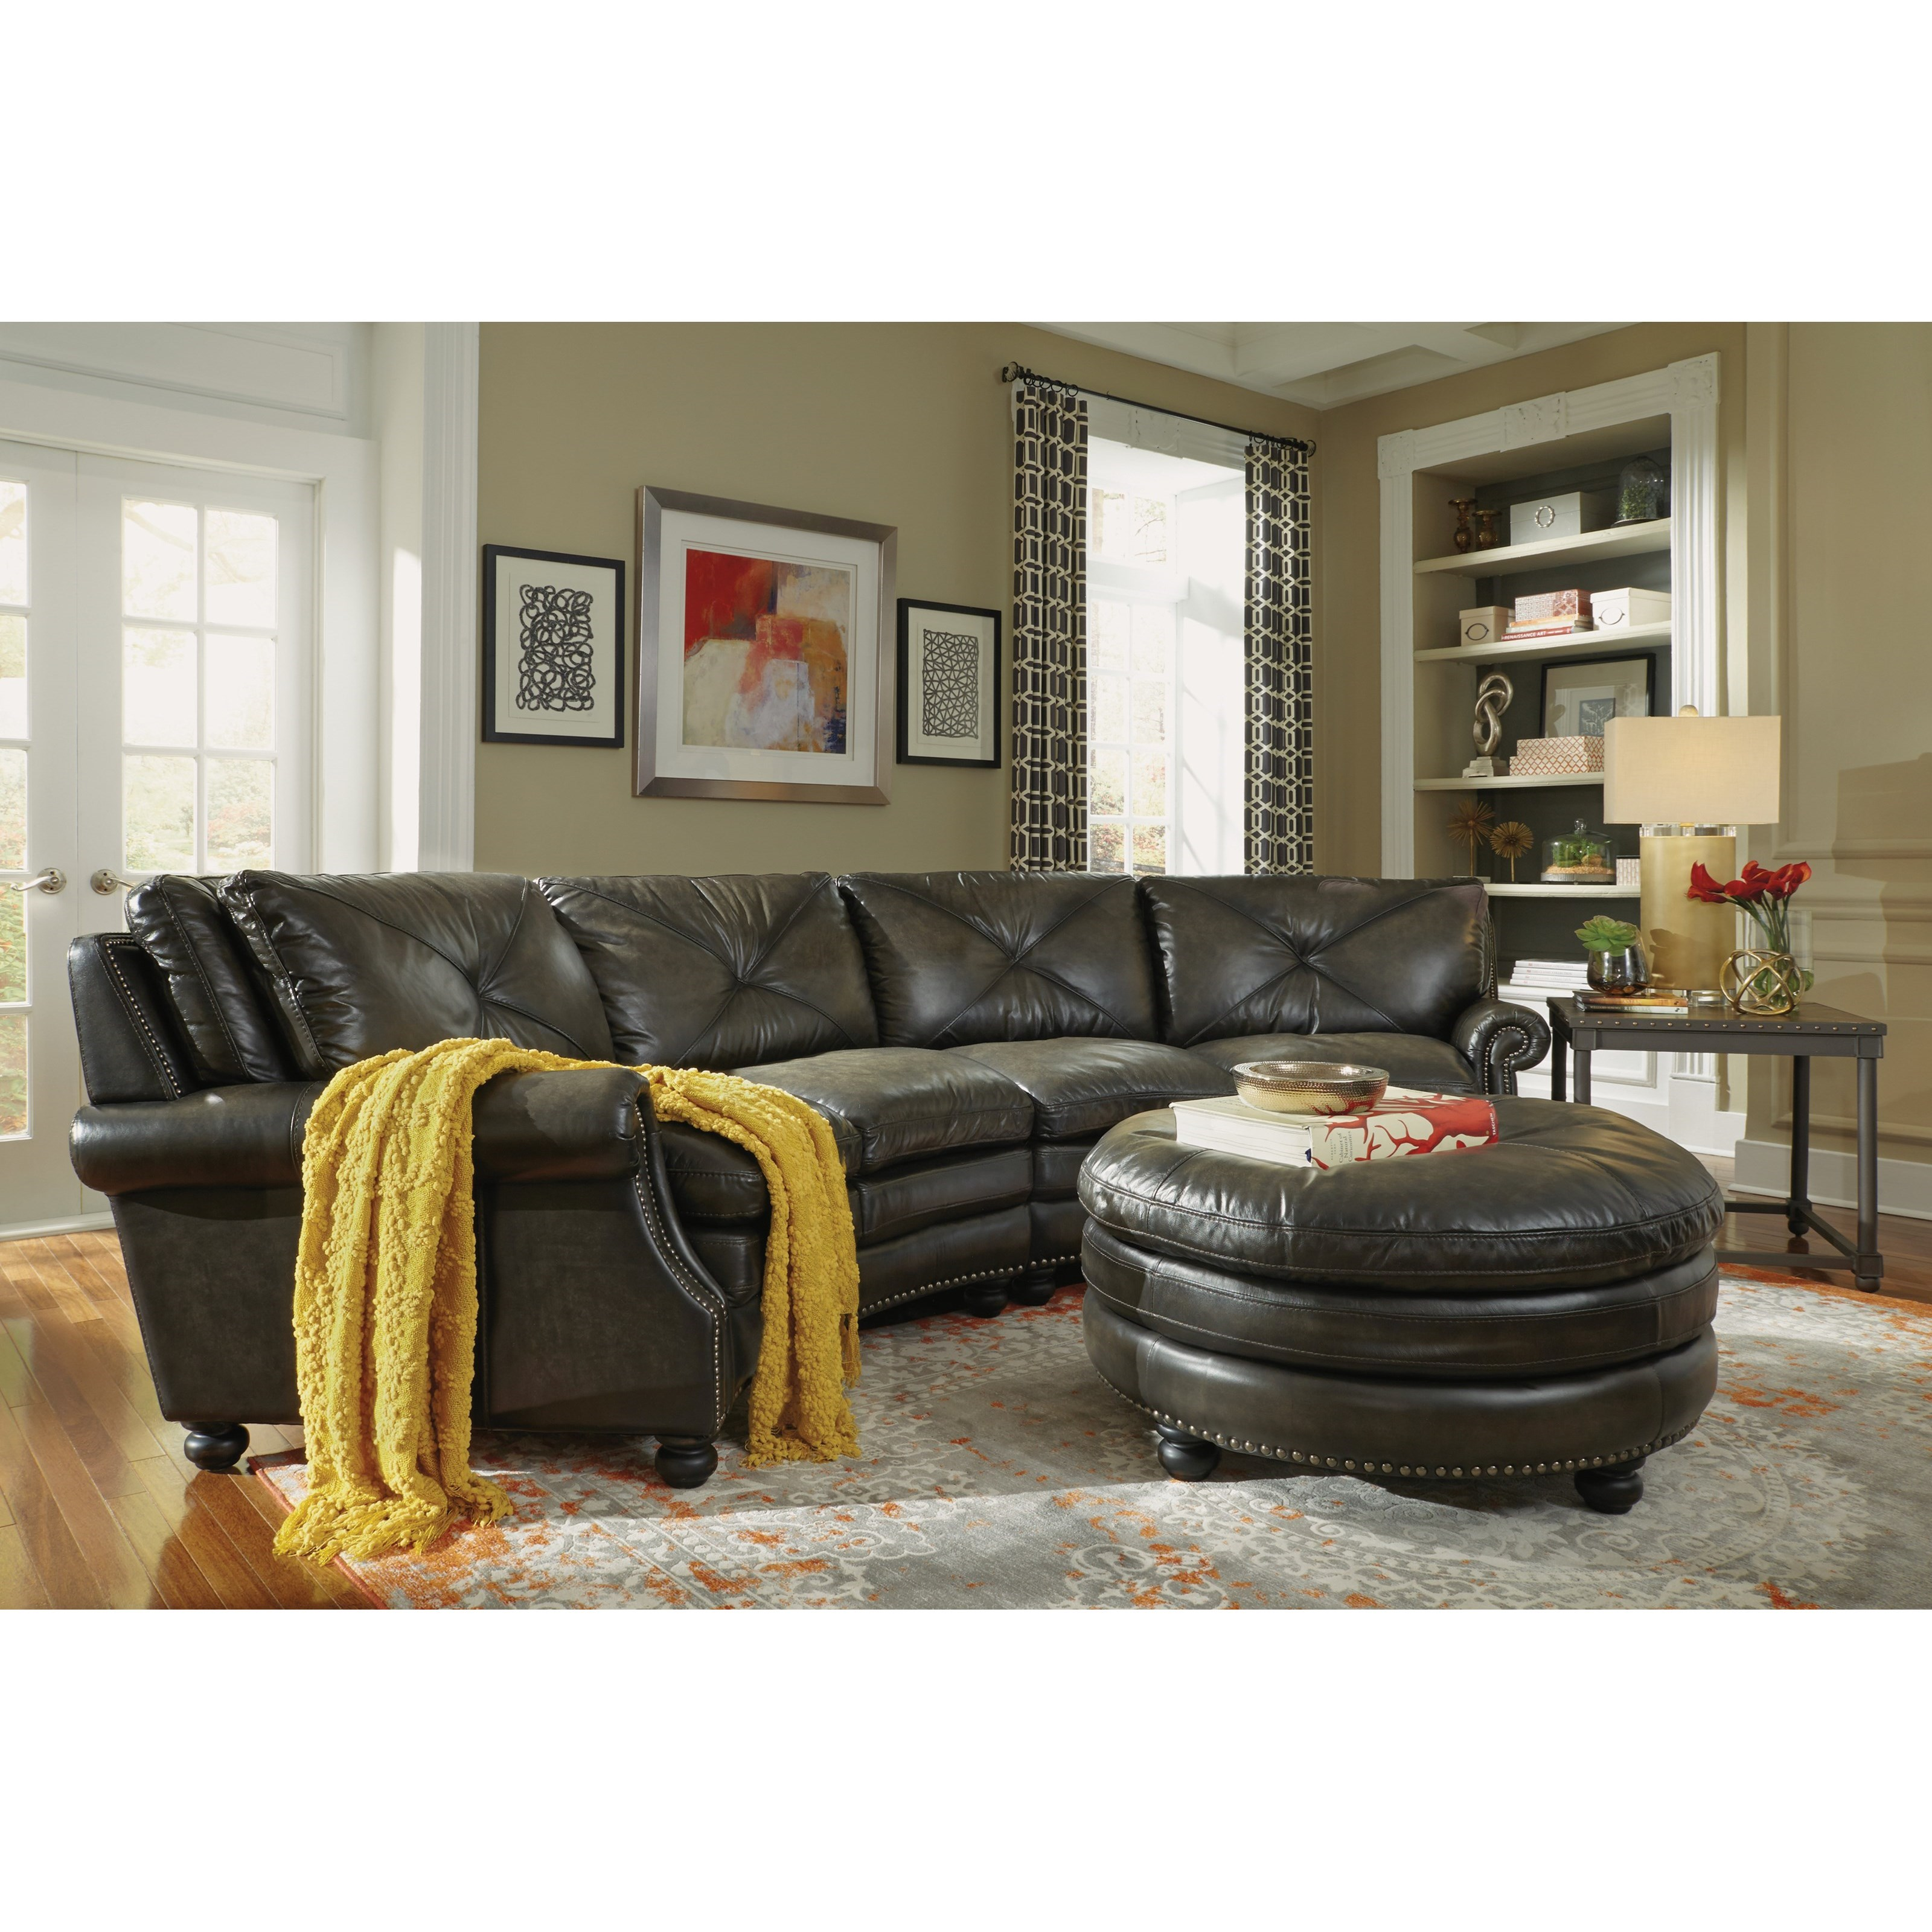 Flexsteel Latitudes-Suffolk Round Sectional Sofa With